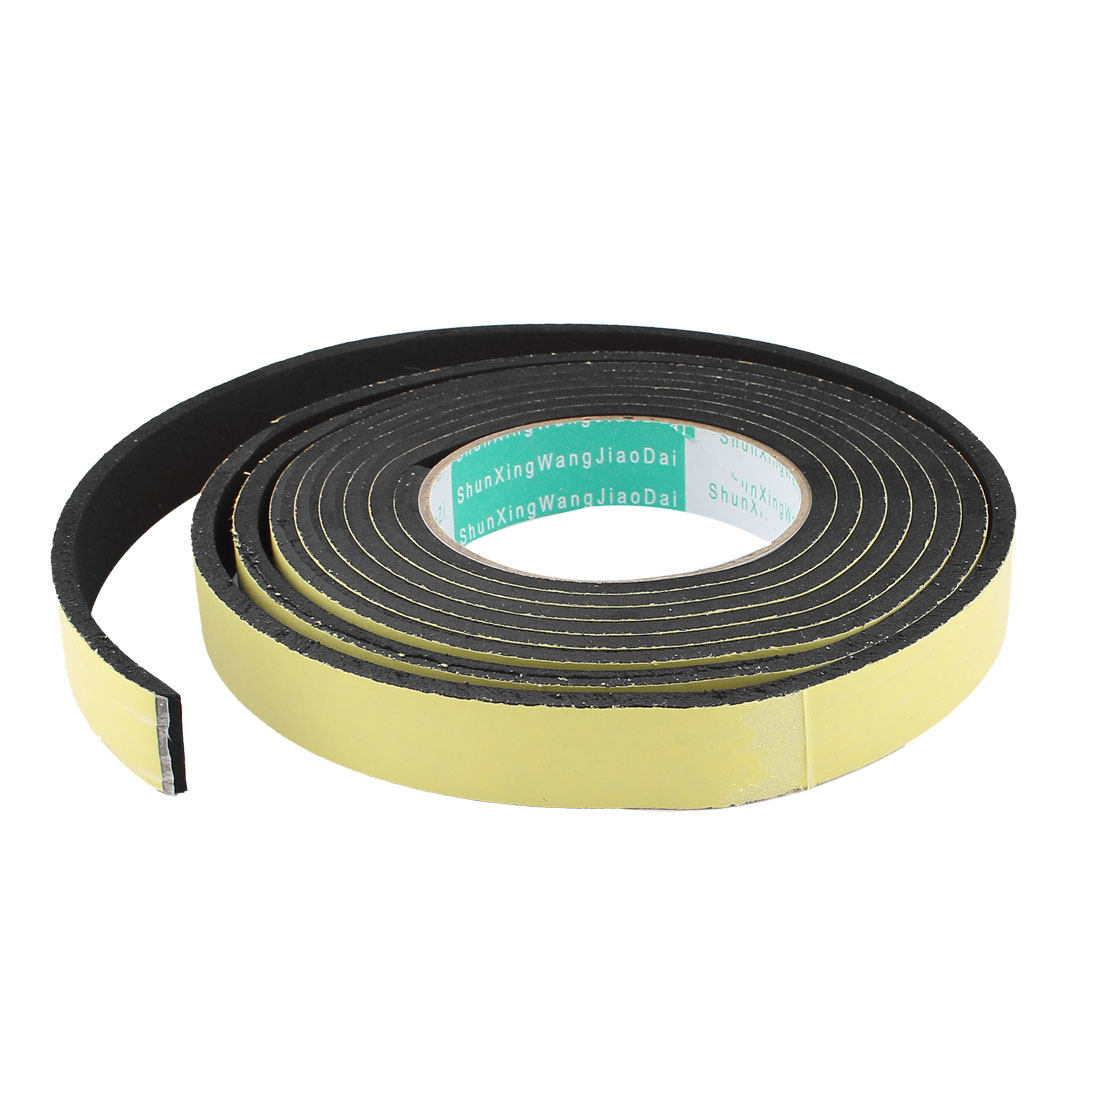 Unique Bargains 3 Meter 20mm x 5mm Single Side Adhesive Foam Sealing Tape for Door Window